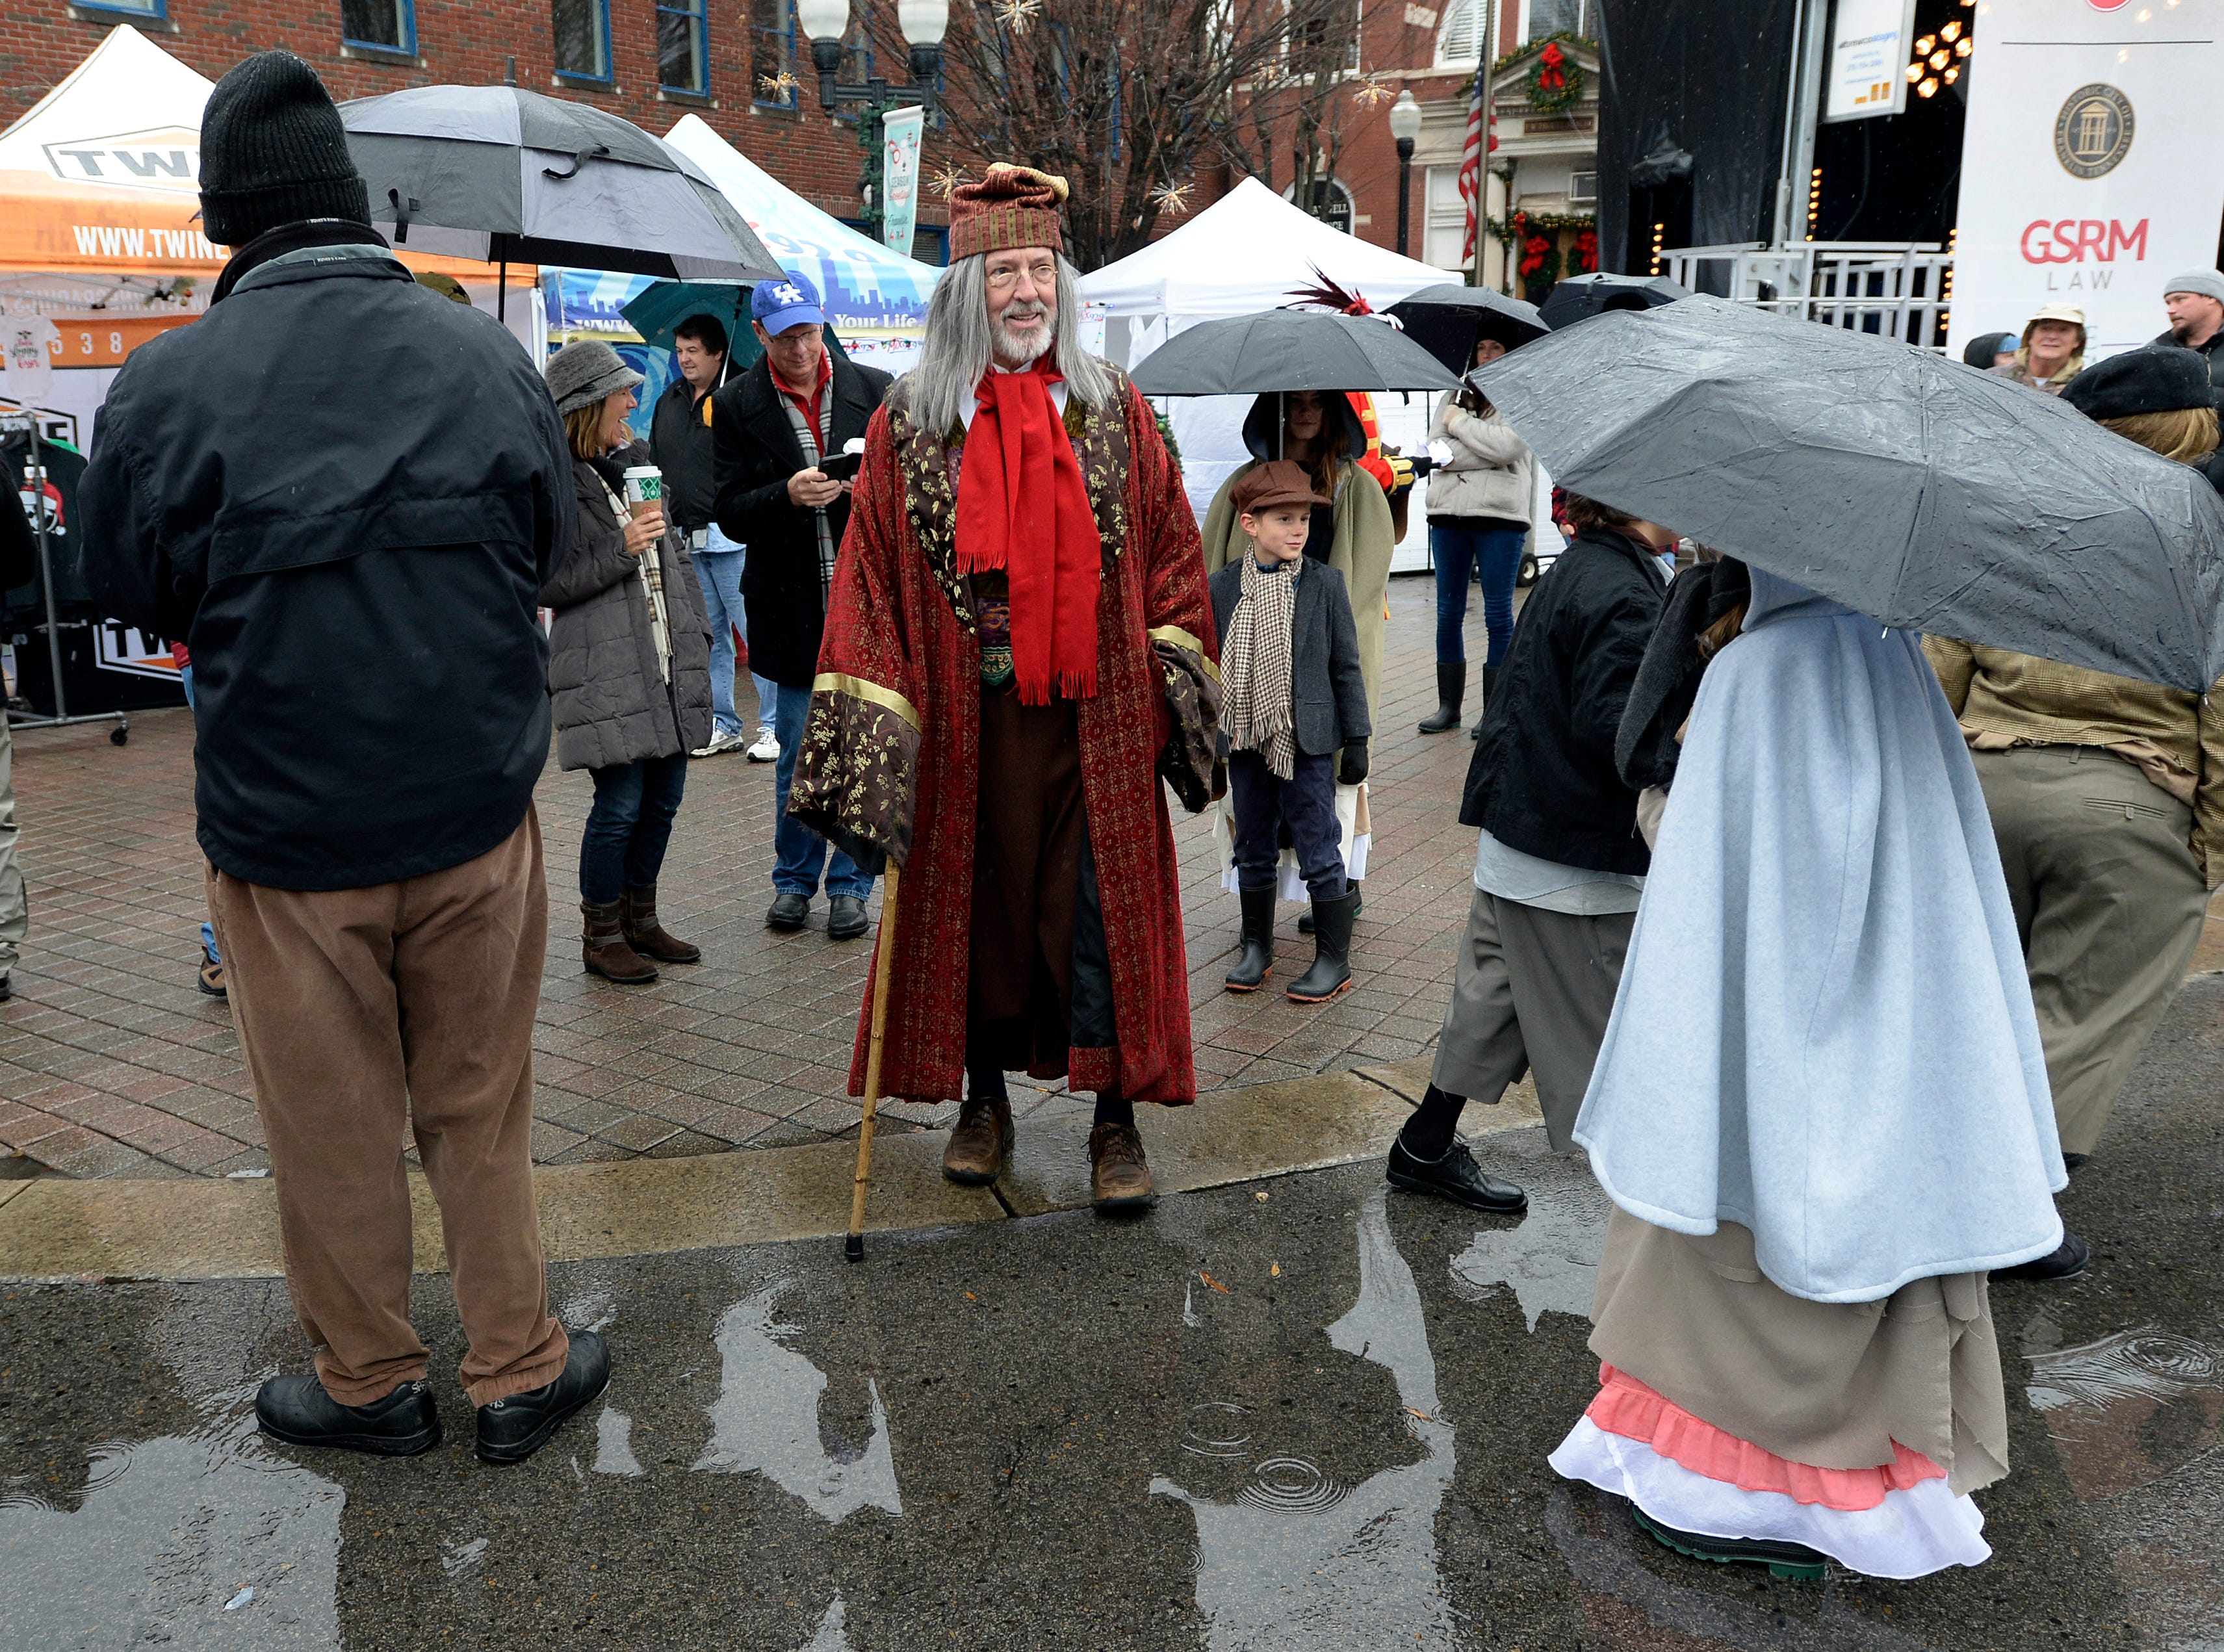 A festive atmosphere persisted through dreary weather at the Dickens of a Christmas on Saturday, Dec. 8, 2018, in Franklin, Tenn.